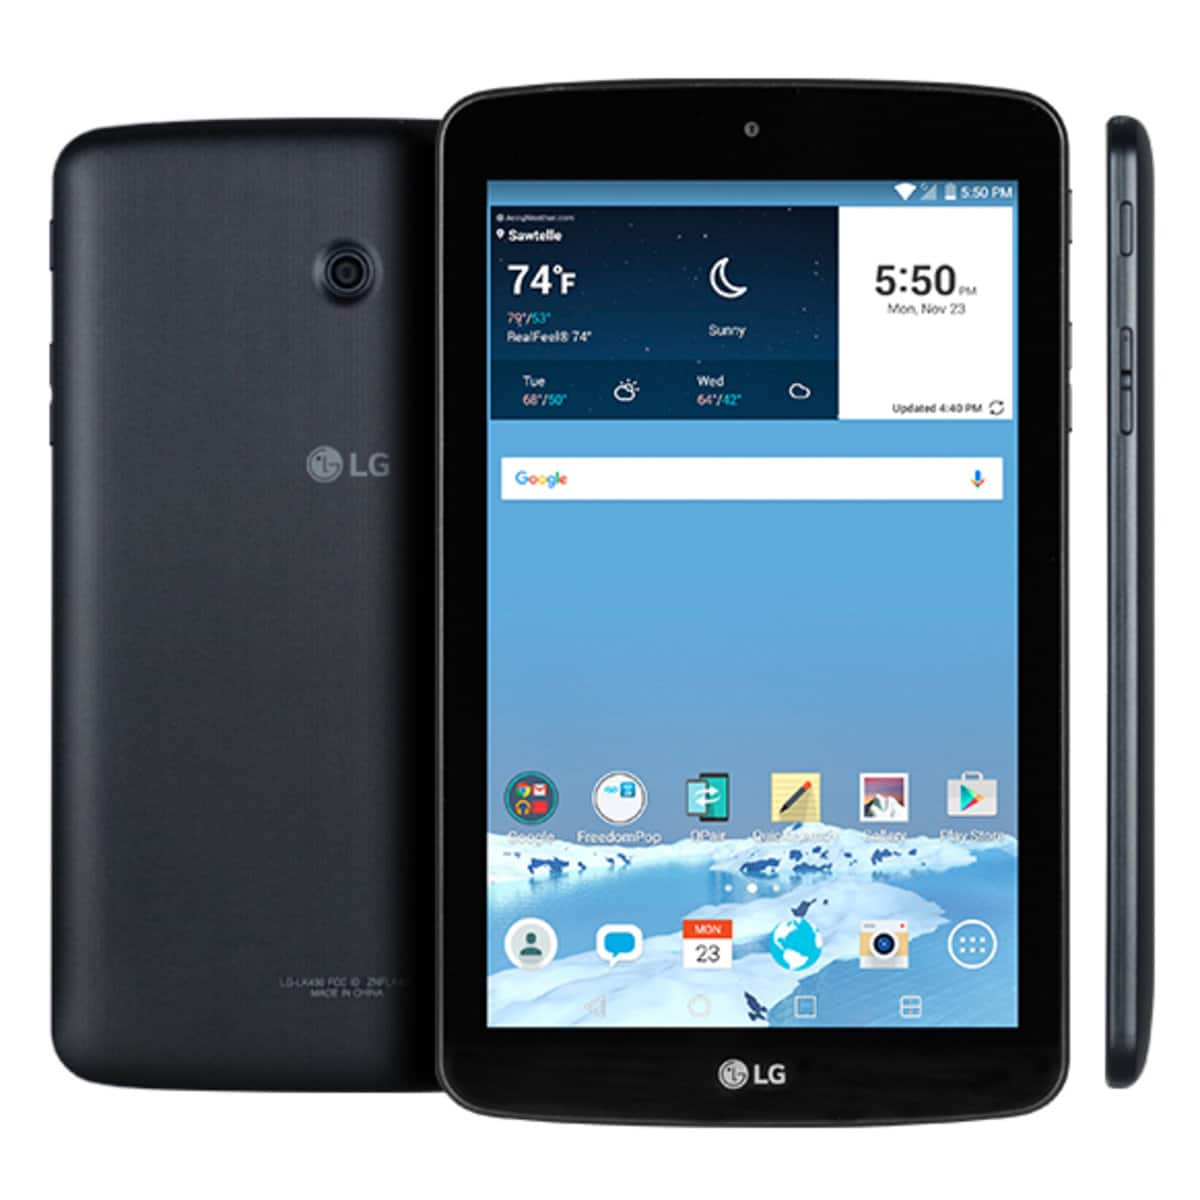 "7"" LG G Pad 8GB Tablet (WiFi + LTE) + Free Internet w/FreedomPop (Refurbished) - $49.99 + Free Shipping"